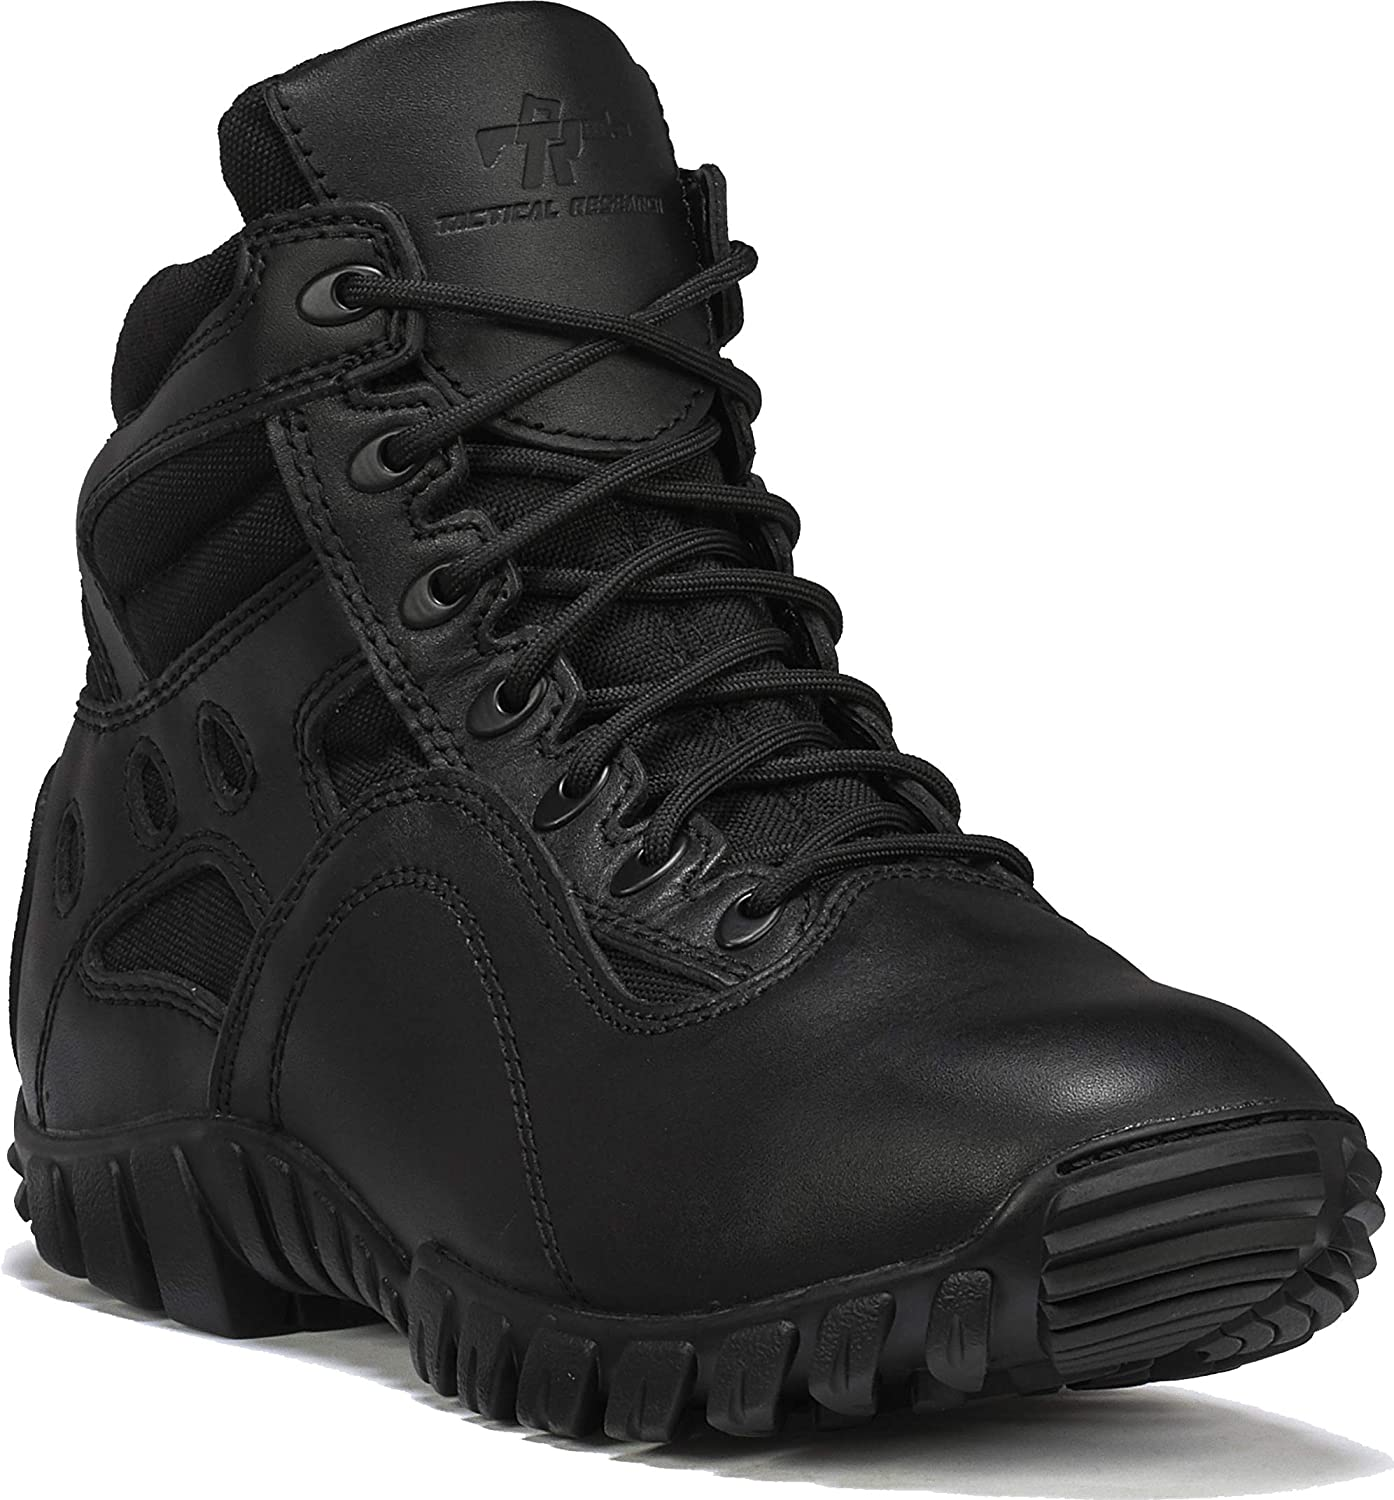 TACTICAL Luxury goods RESEARCH TR Men's KHYBER Lightweight Weather Max 42% OFF Hot TR966